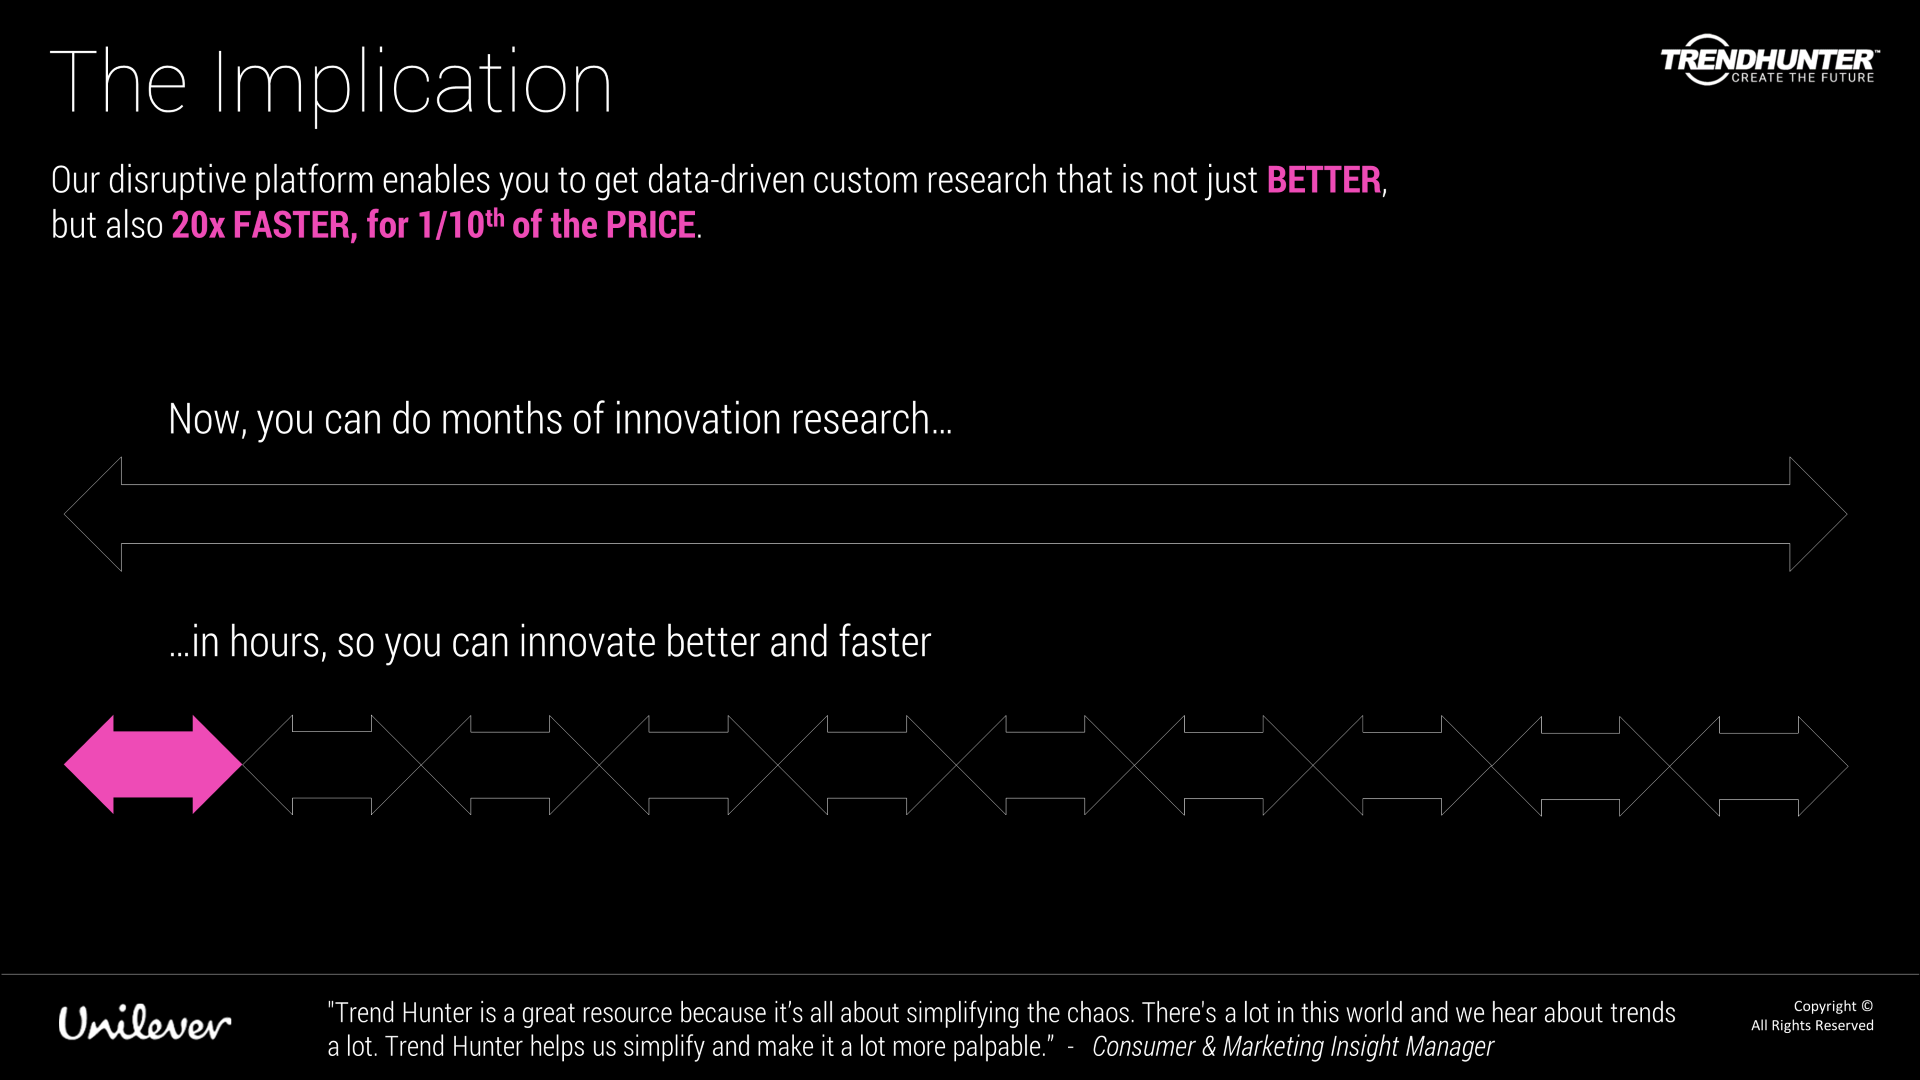 Image Slide: Trend Hunter fast custom research projects